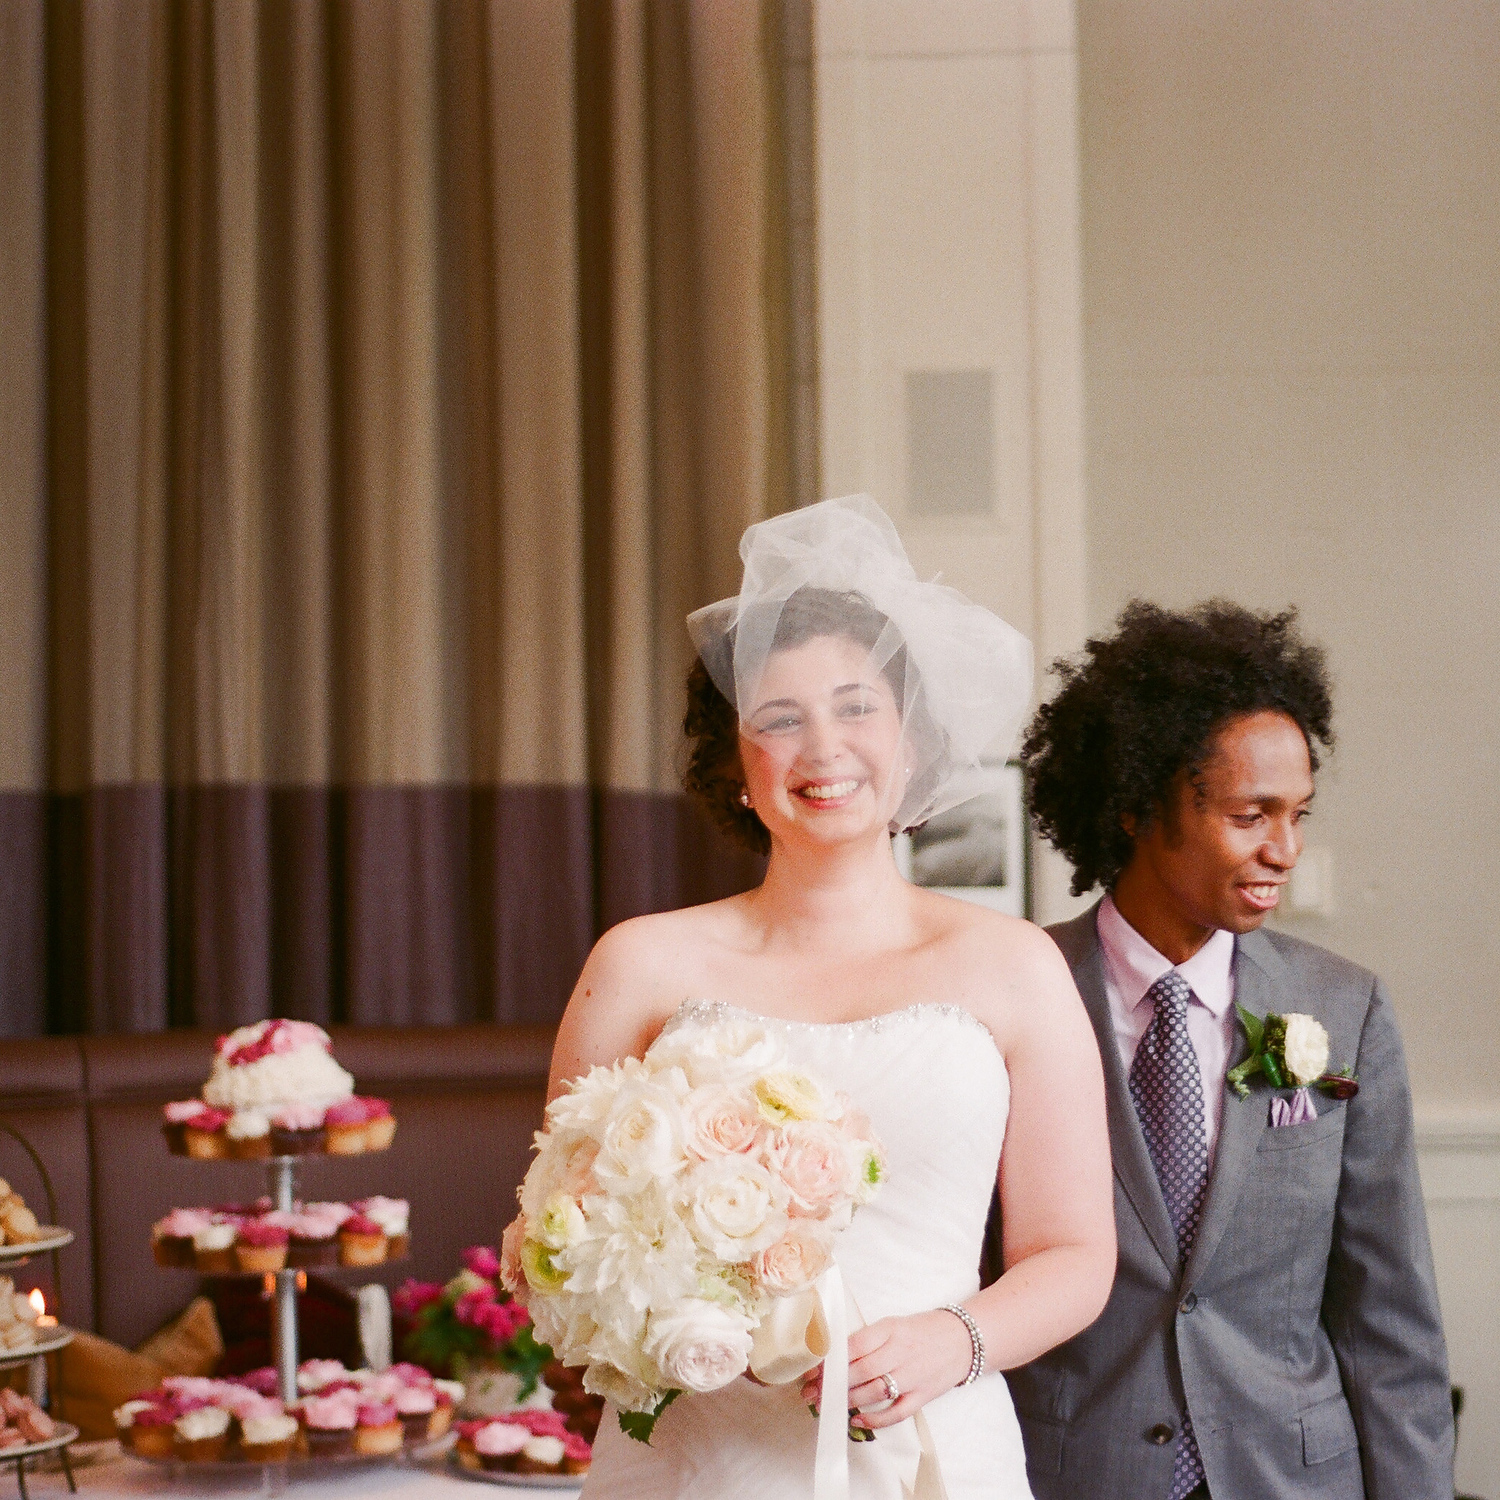 film wedding photograph of white bride and black groom